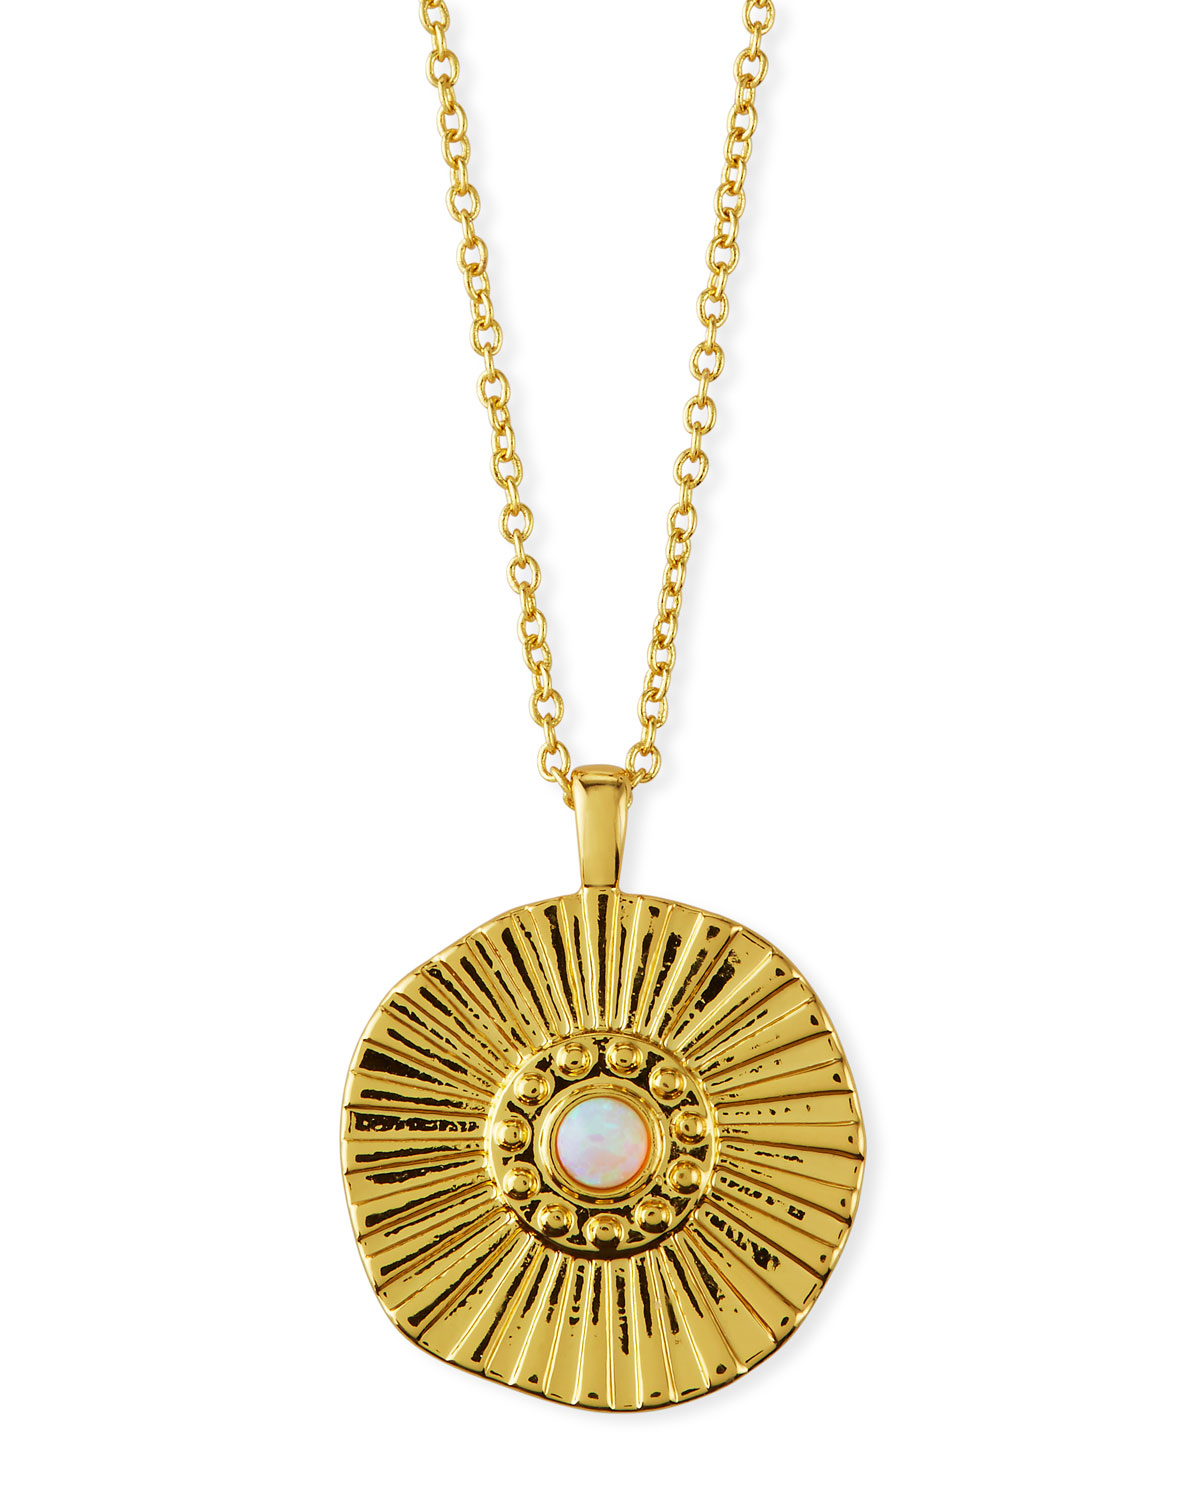 Gorjana Accessories SUNBURST COIN NECKLACE